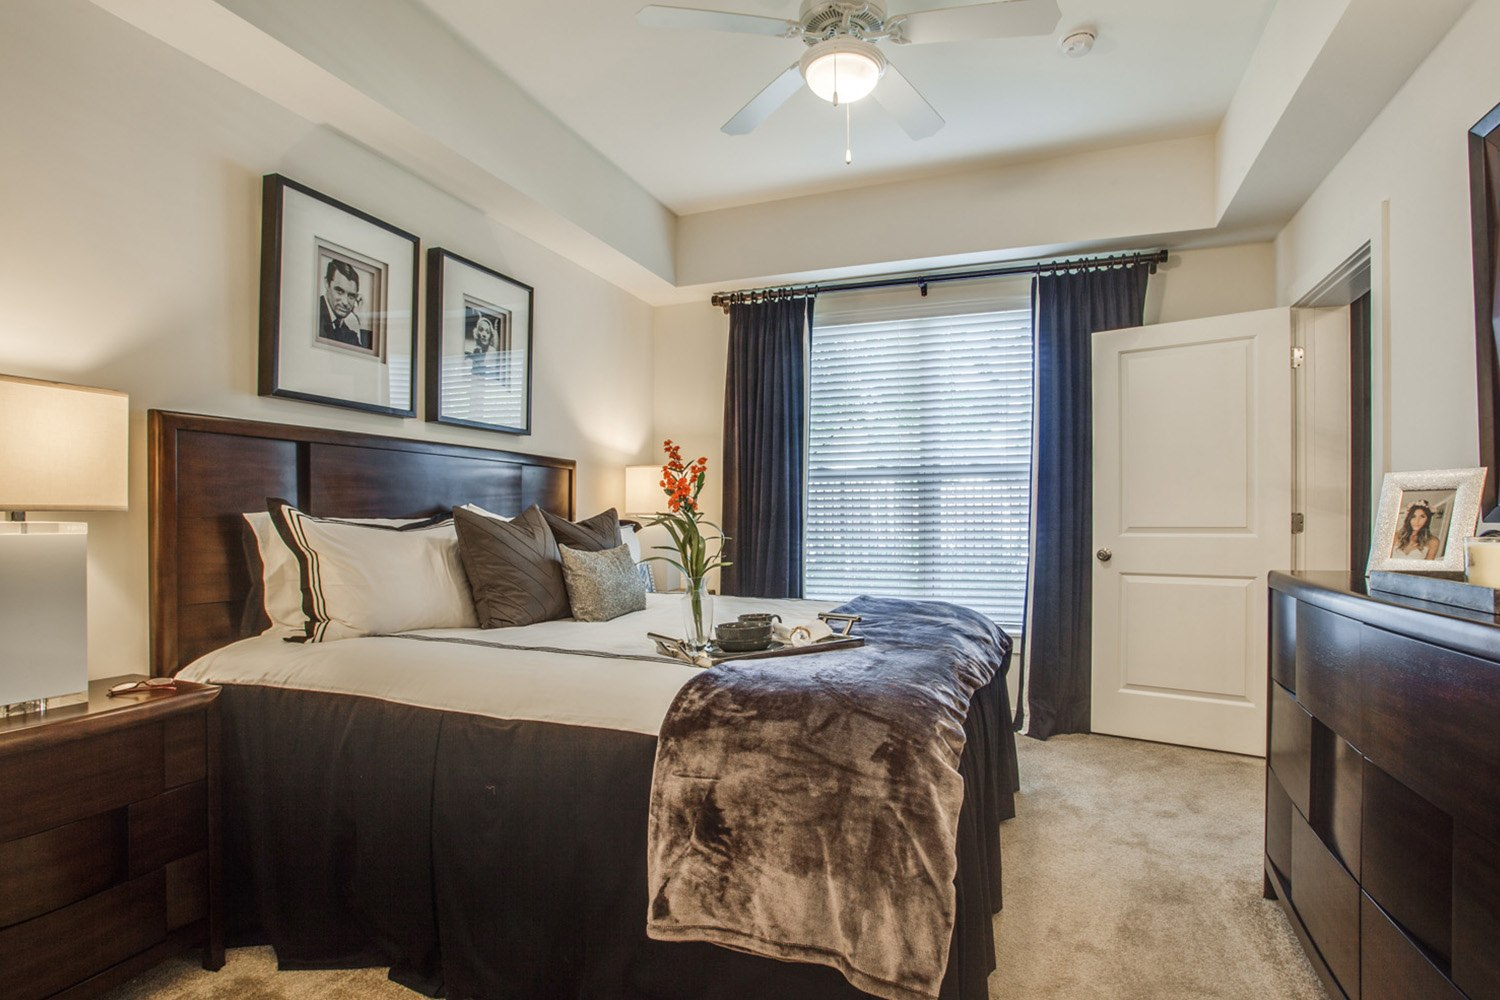 Bedroom at Peachtree Dunwoody Place